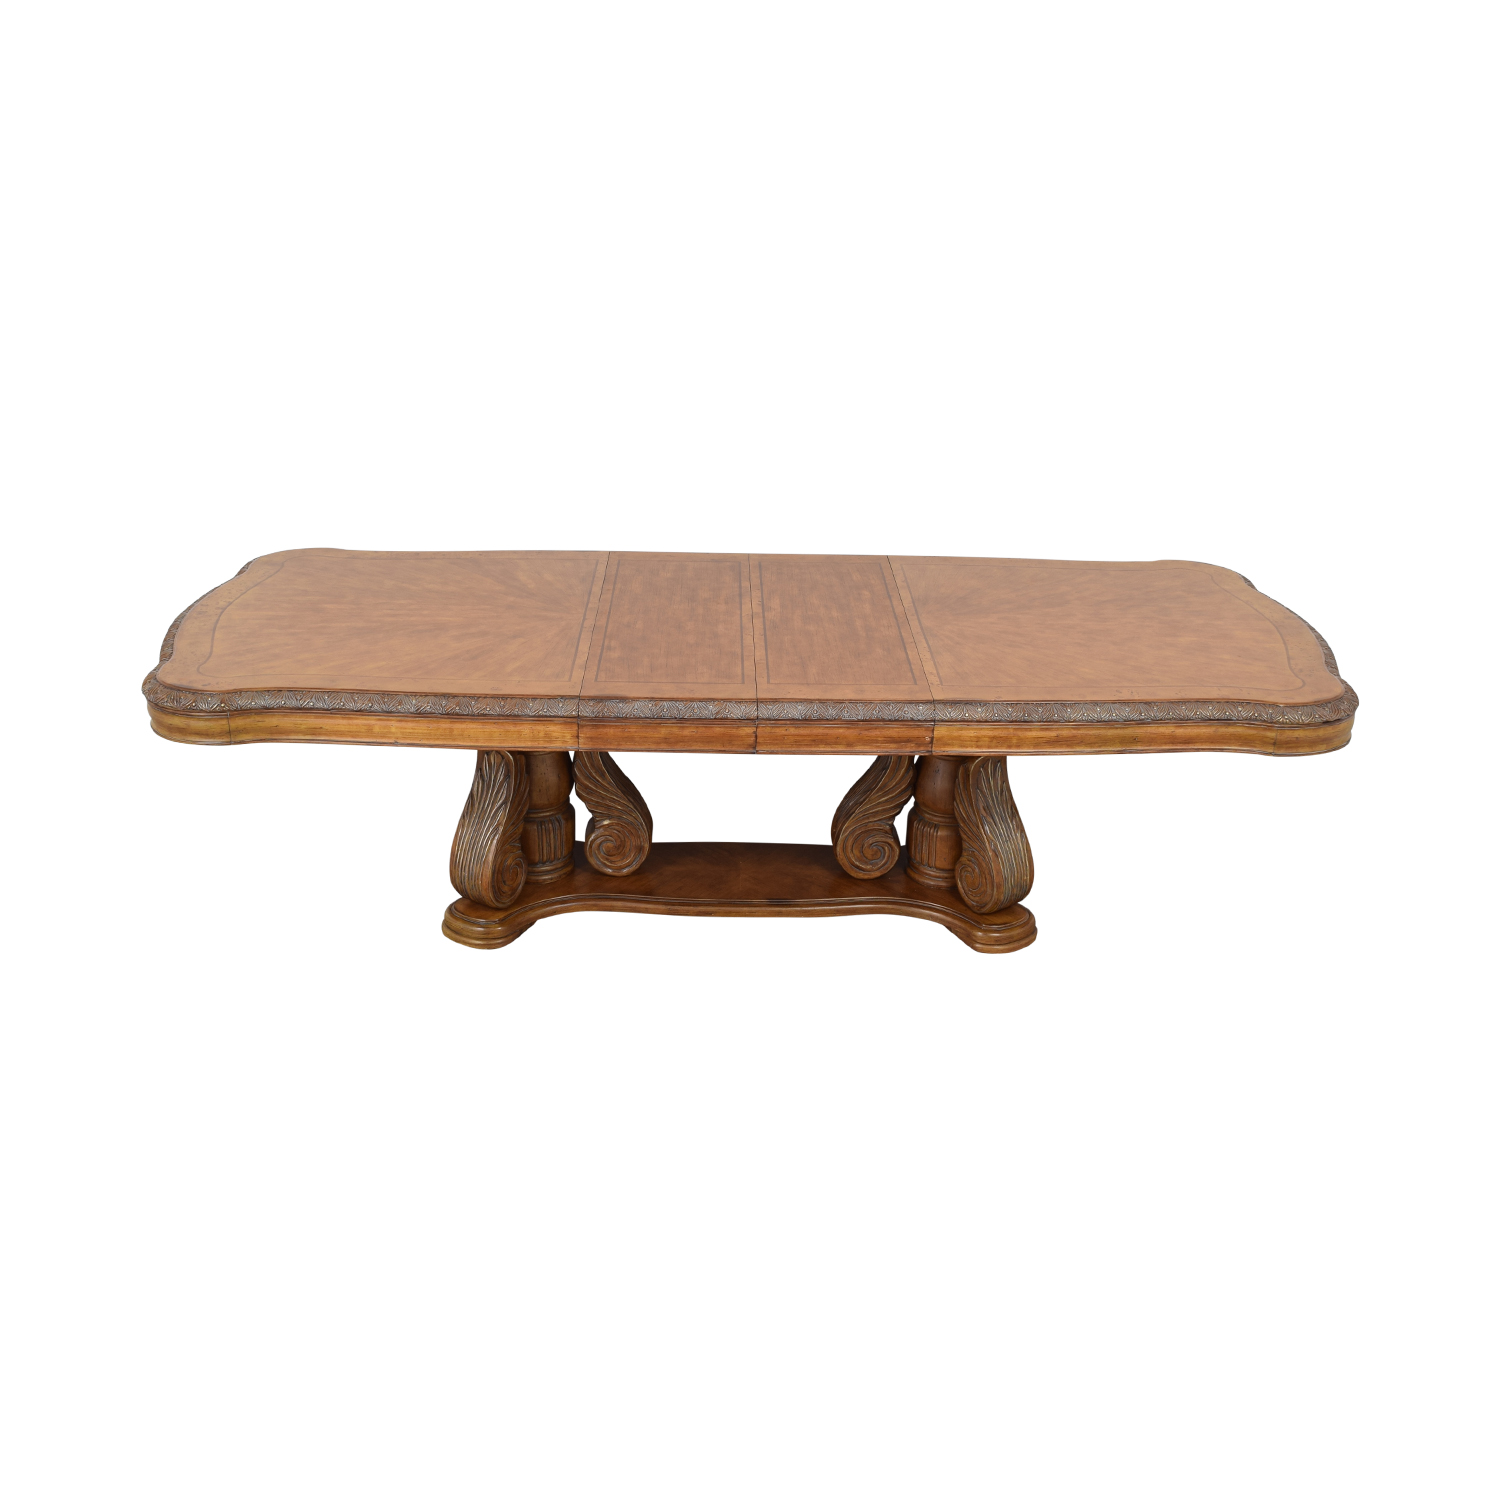 Michael Amini Michael Amini Extendable Dining Table with Two Leaves coupon